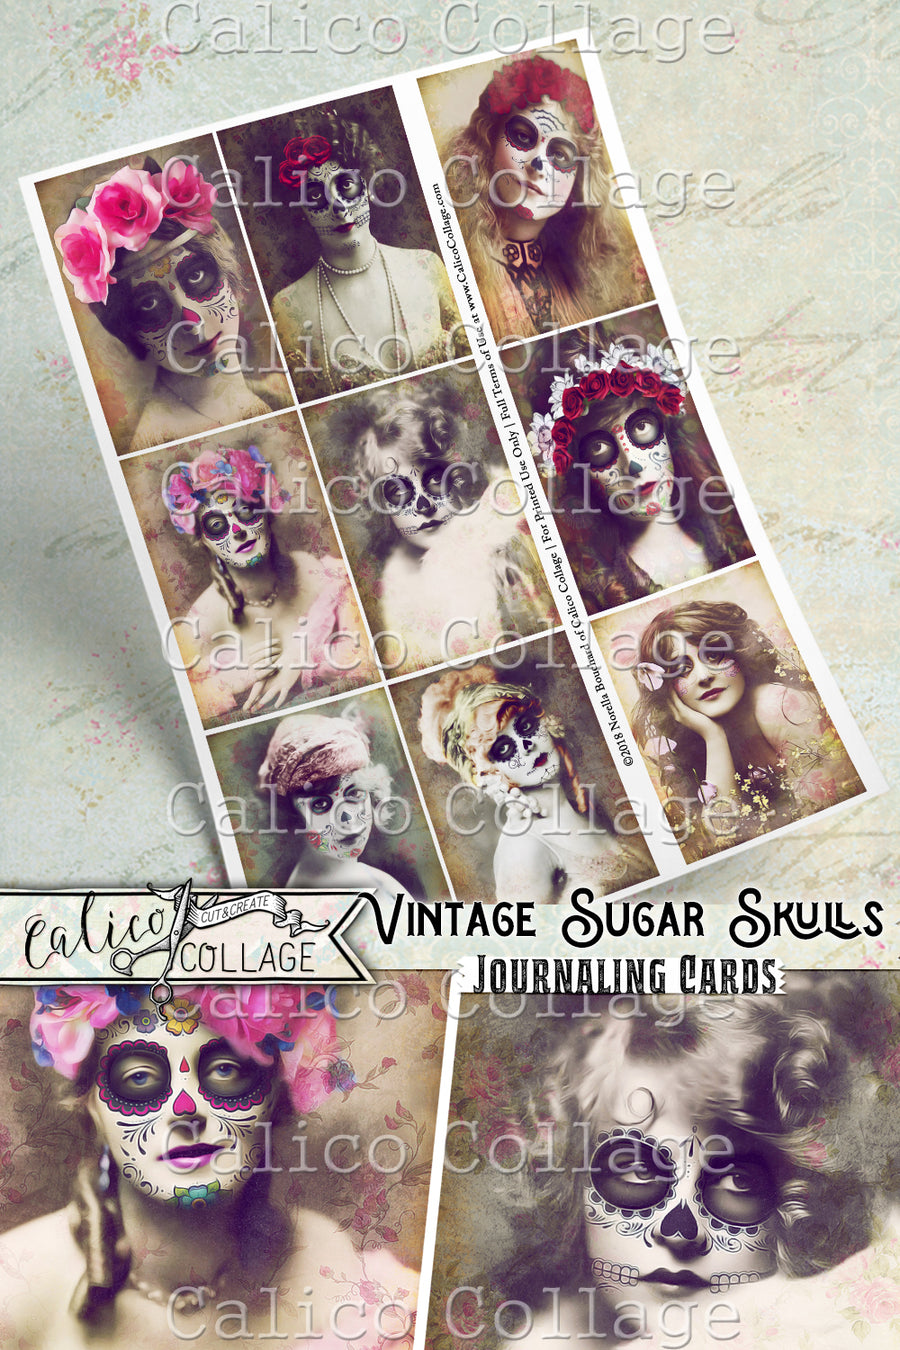 Vintage Sugar Skulls Ephemera Pack Journaling Cards